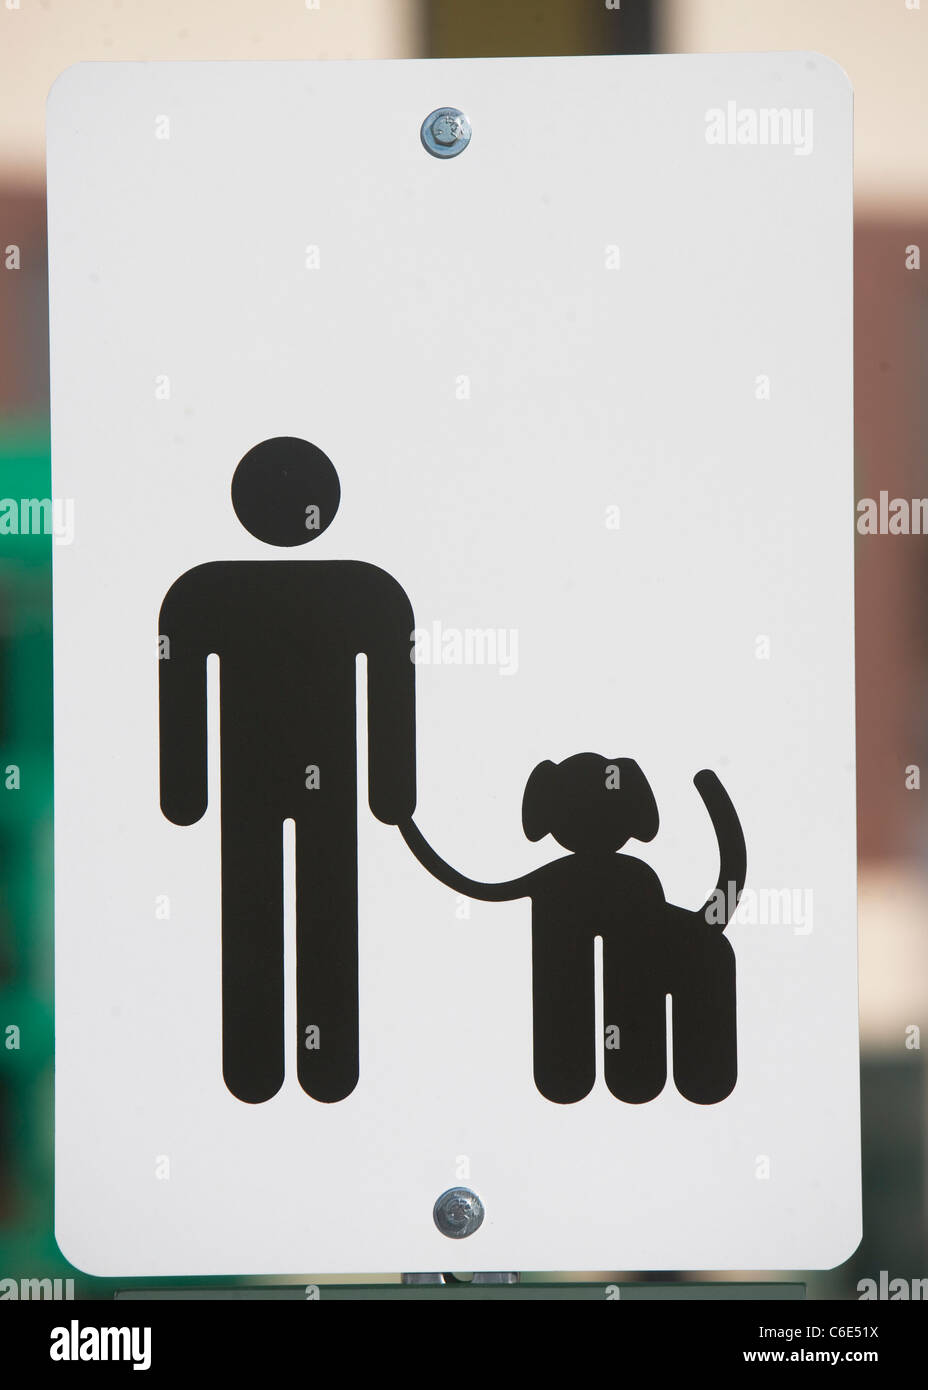 USA, New York State, New York City, dog walking sign, close-up - Stock Image